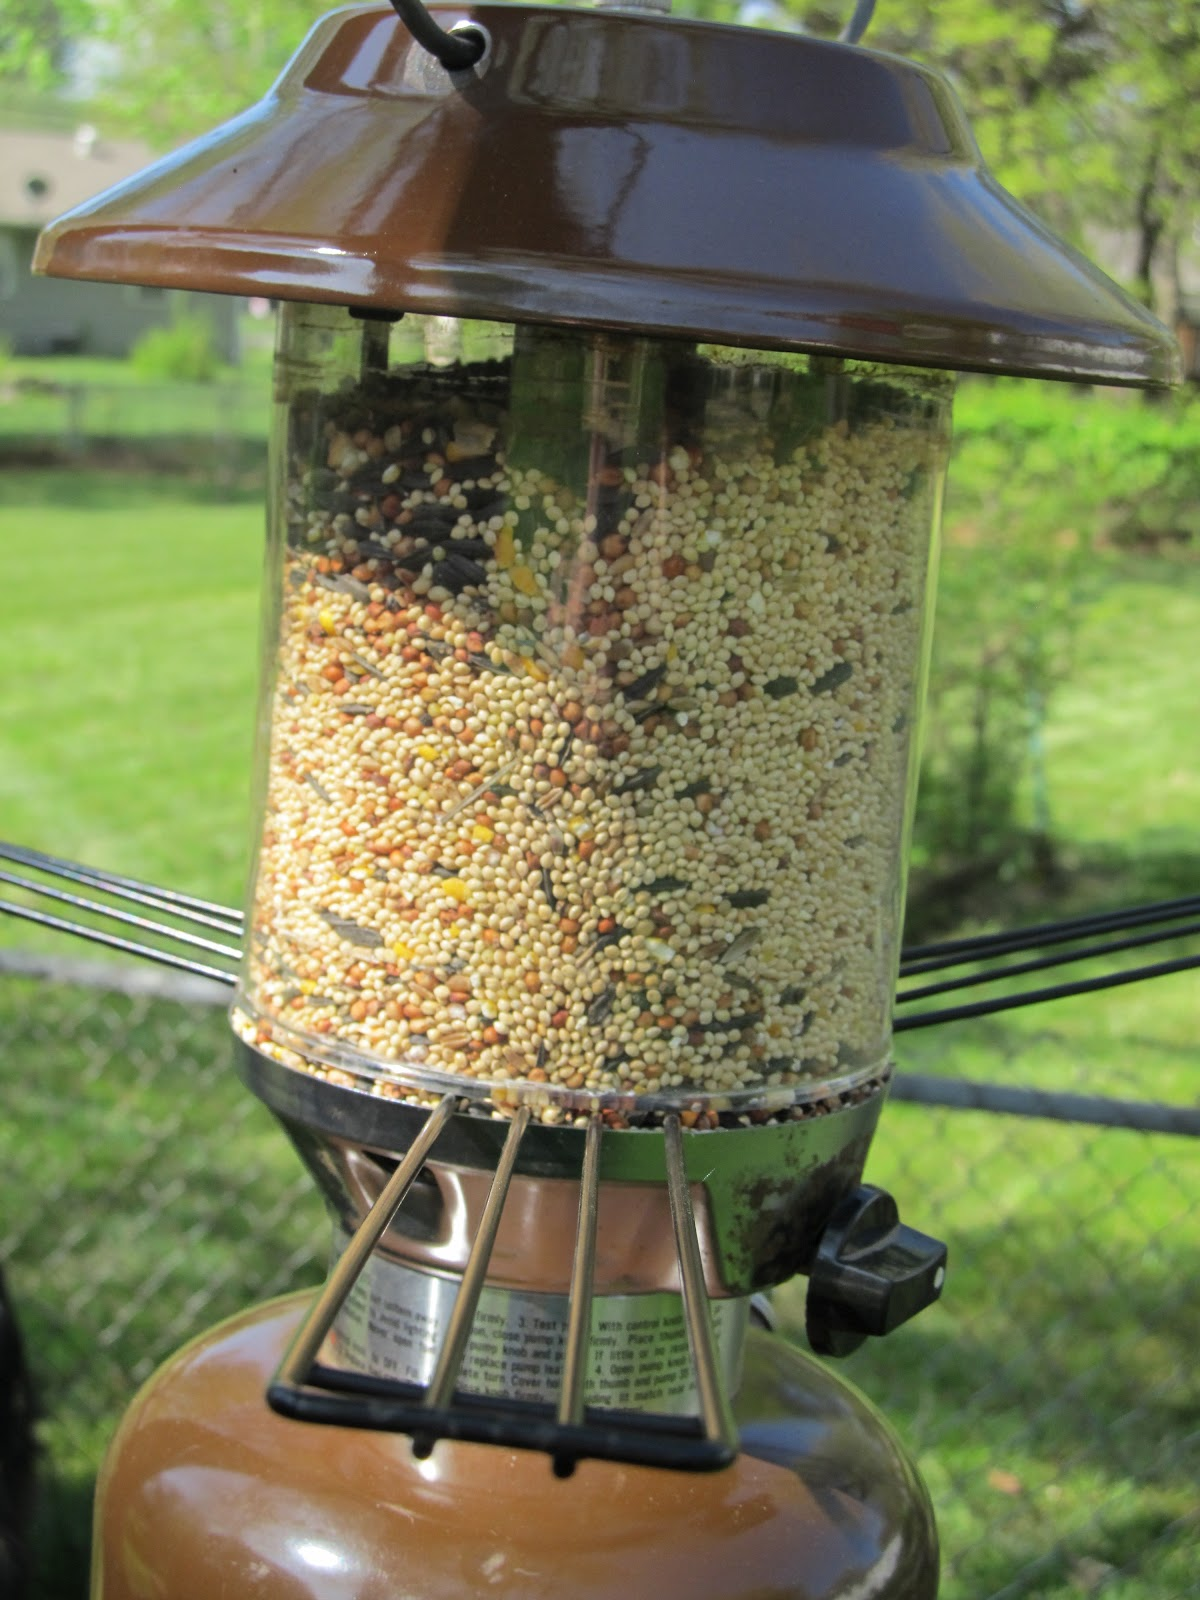 15 Inspiring Diy And Homemade Bird Feeder Plans And Ideas The Self Sufficient Living